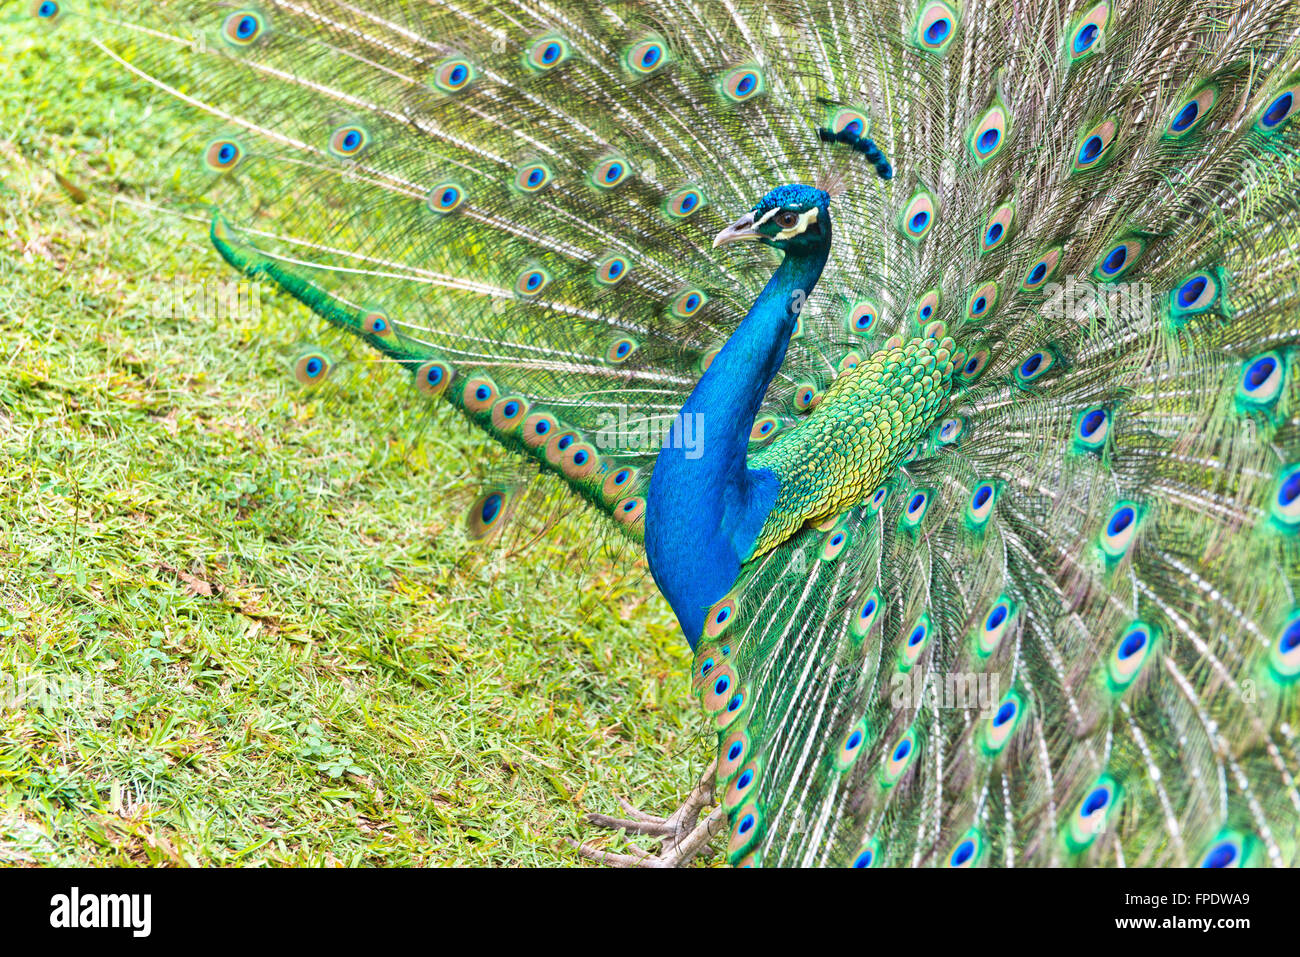 Beautiful Blue Green Plumage of Male Indian Peacock Standing on Grassy Land. Stock Photo